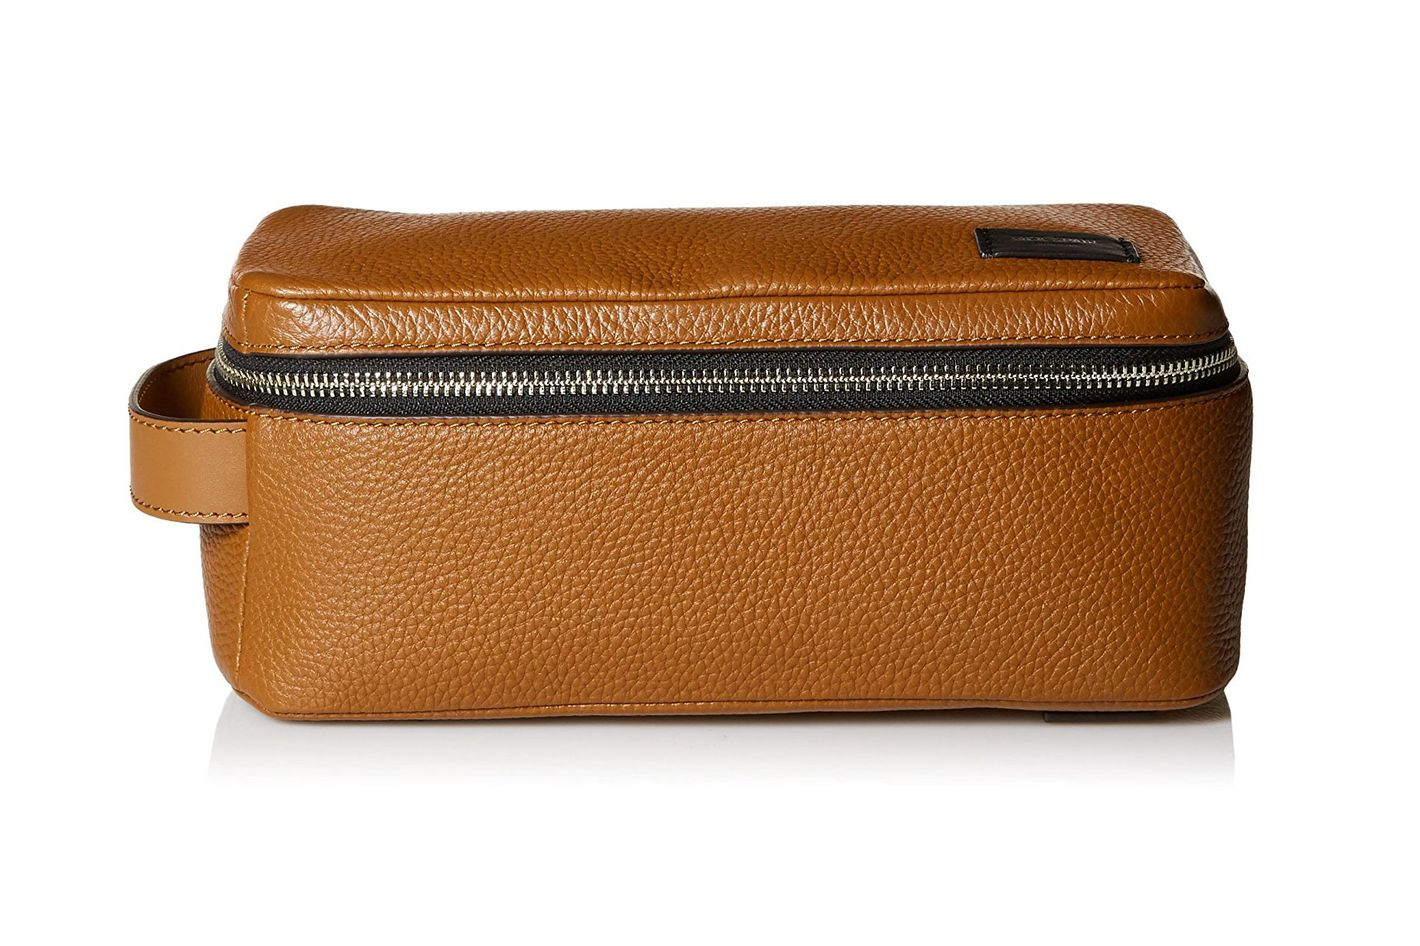 Jack Spade Pebbled Leather Dopp Kit